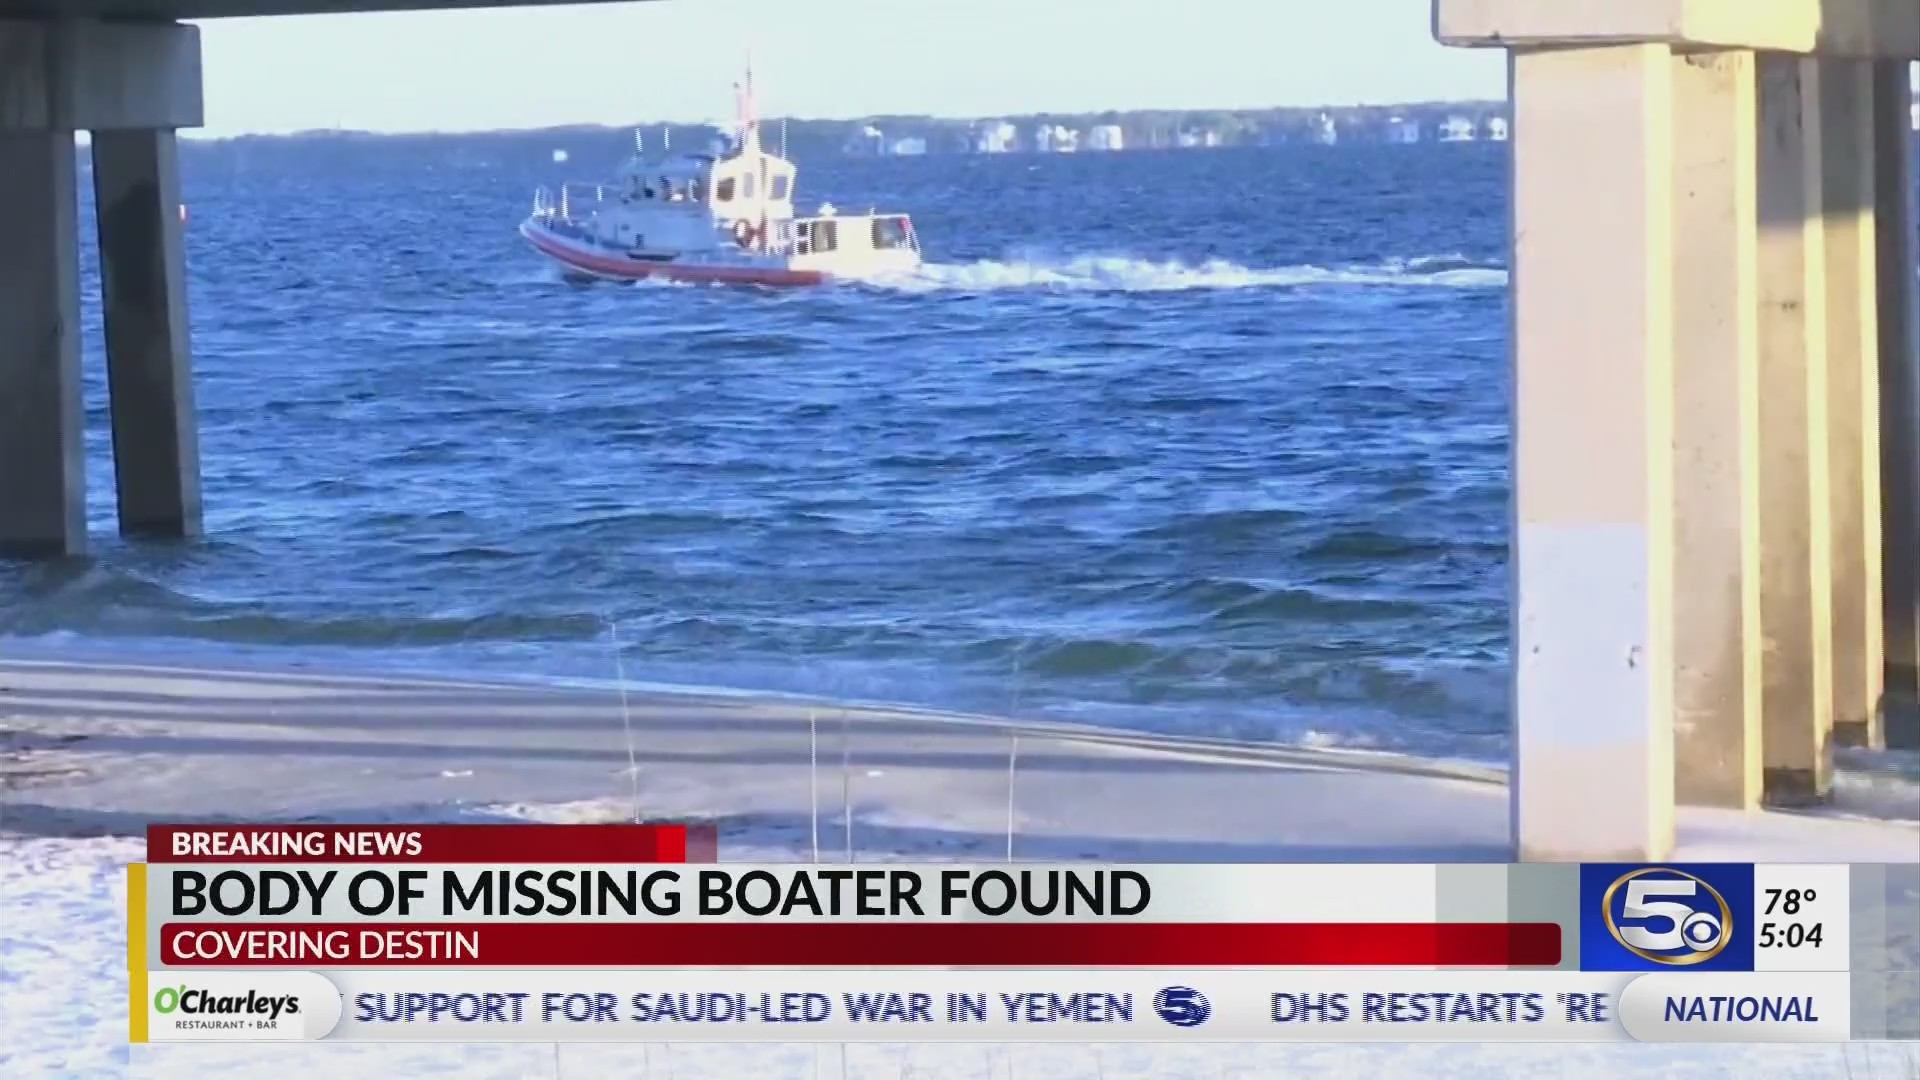 VIDEO: Body of missing boater found, recovered